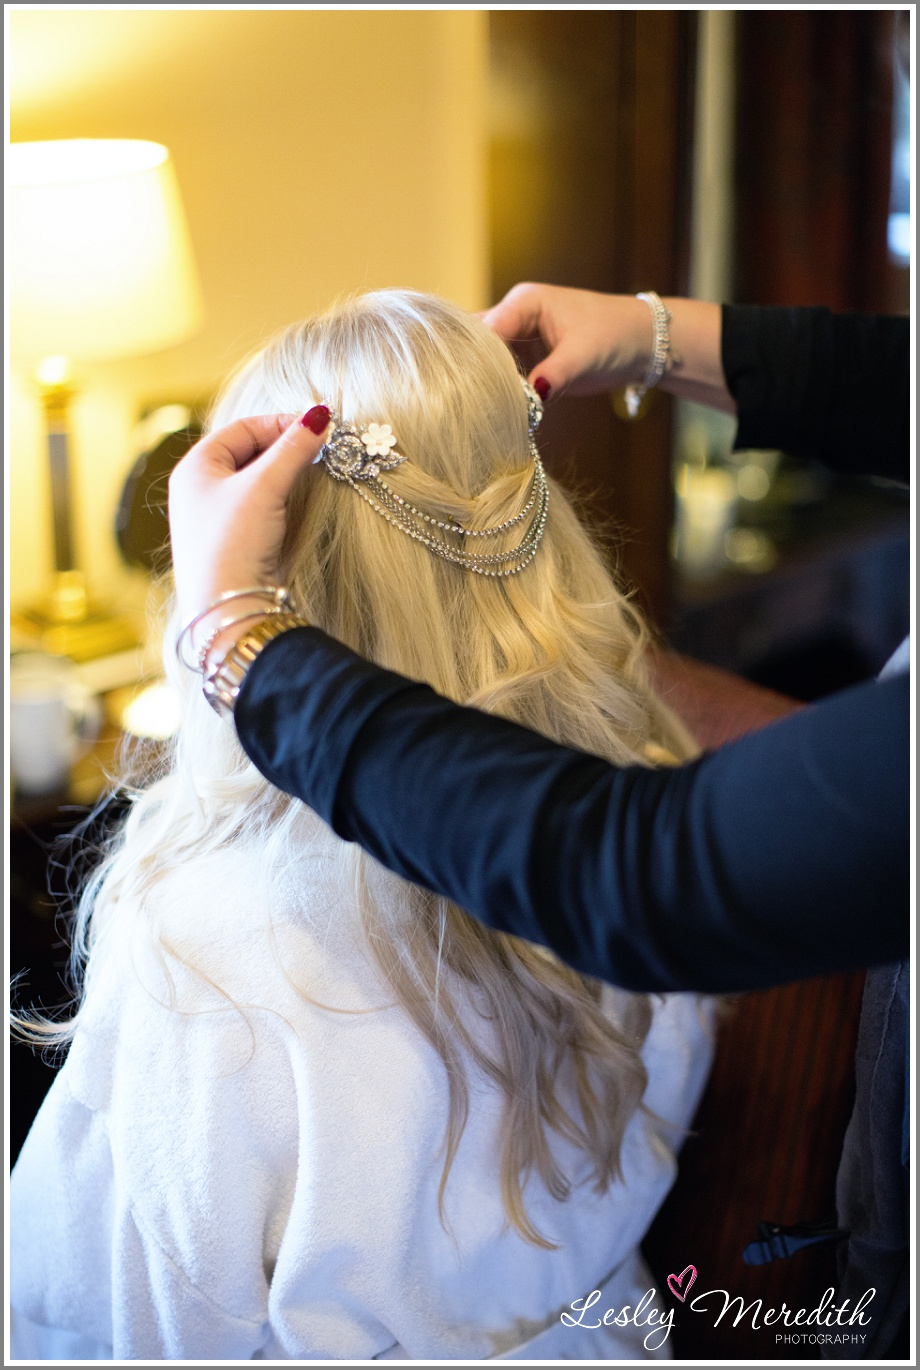 Finishing touches with bridal hair accessories